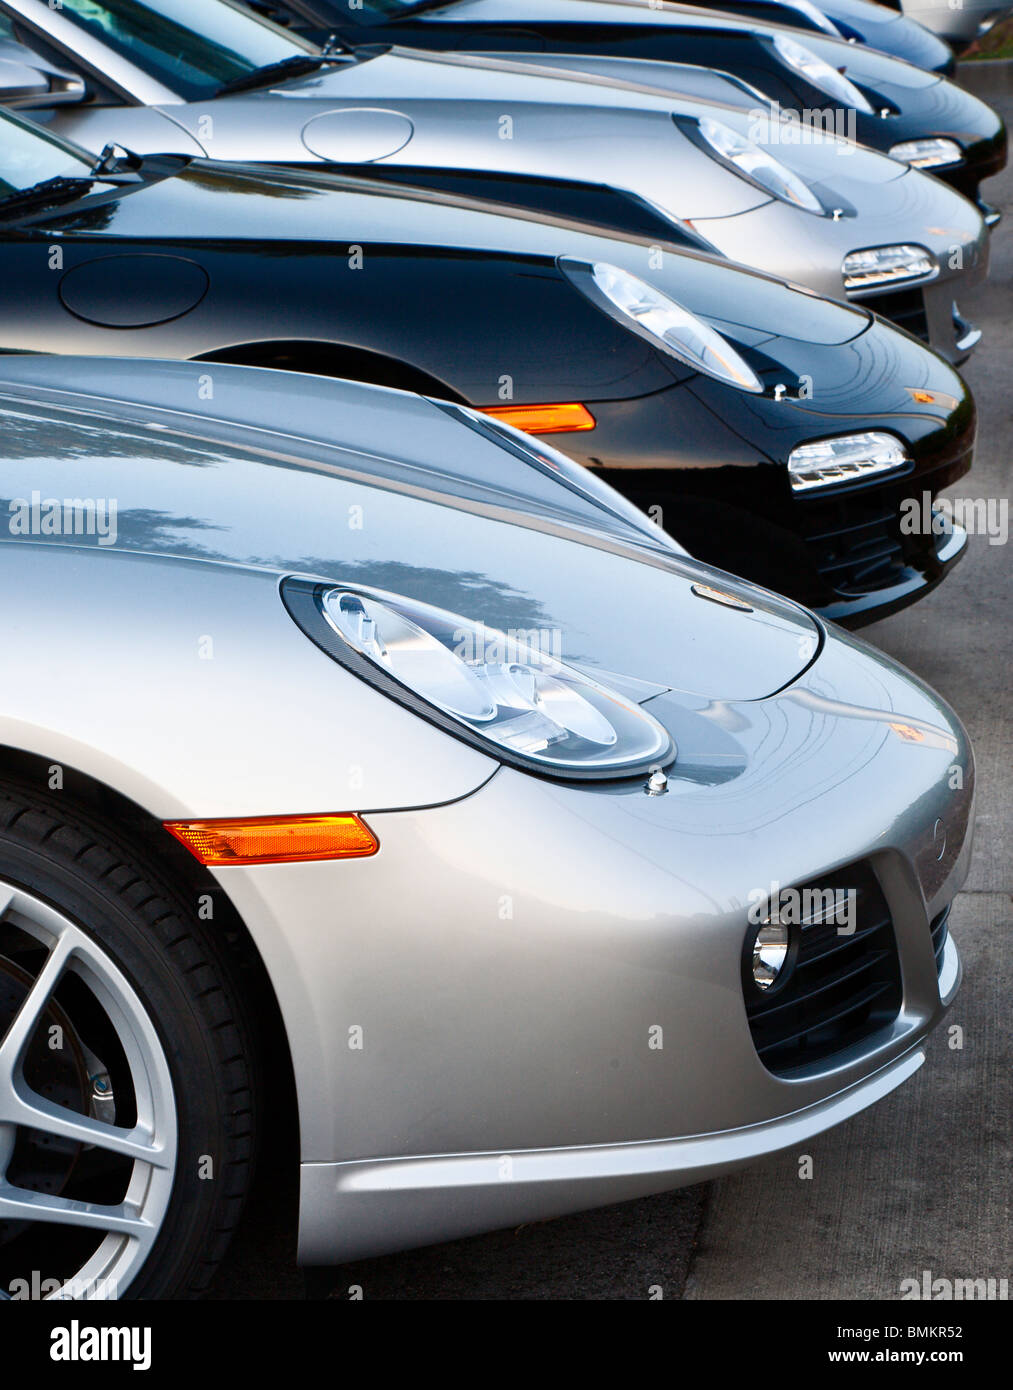 Ocala, FL - Oct 2009 - Porsche sports cars for sale at dealership in Ocala Florida - Stock Image